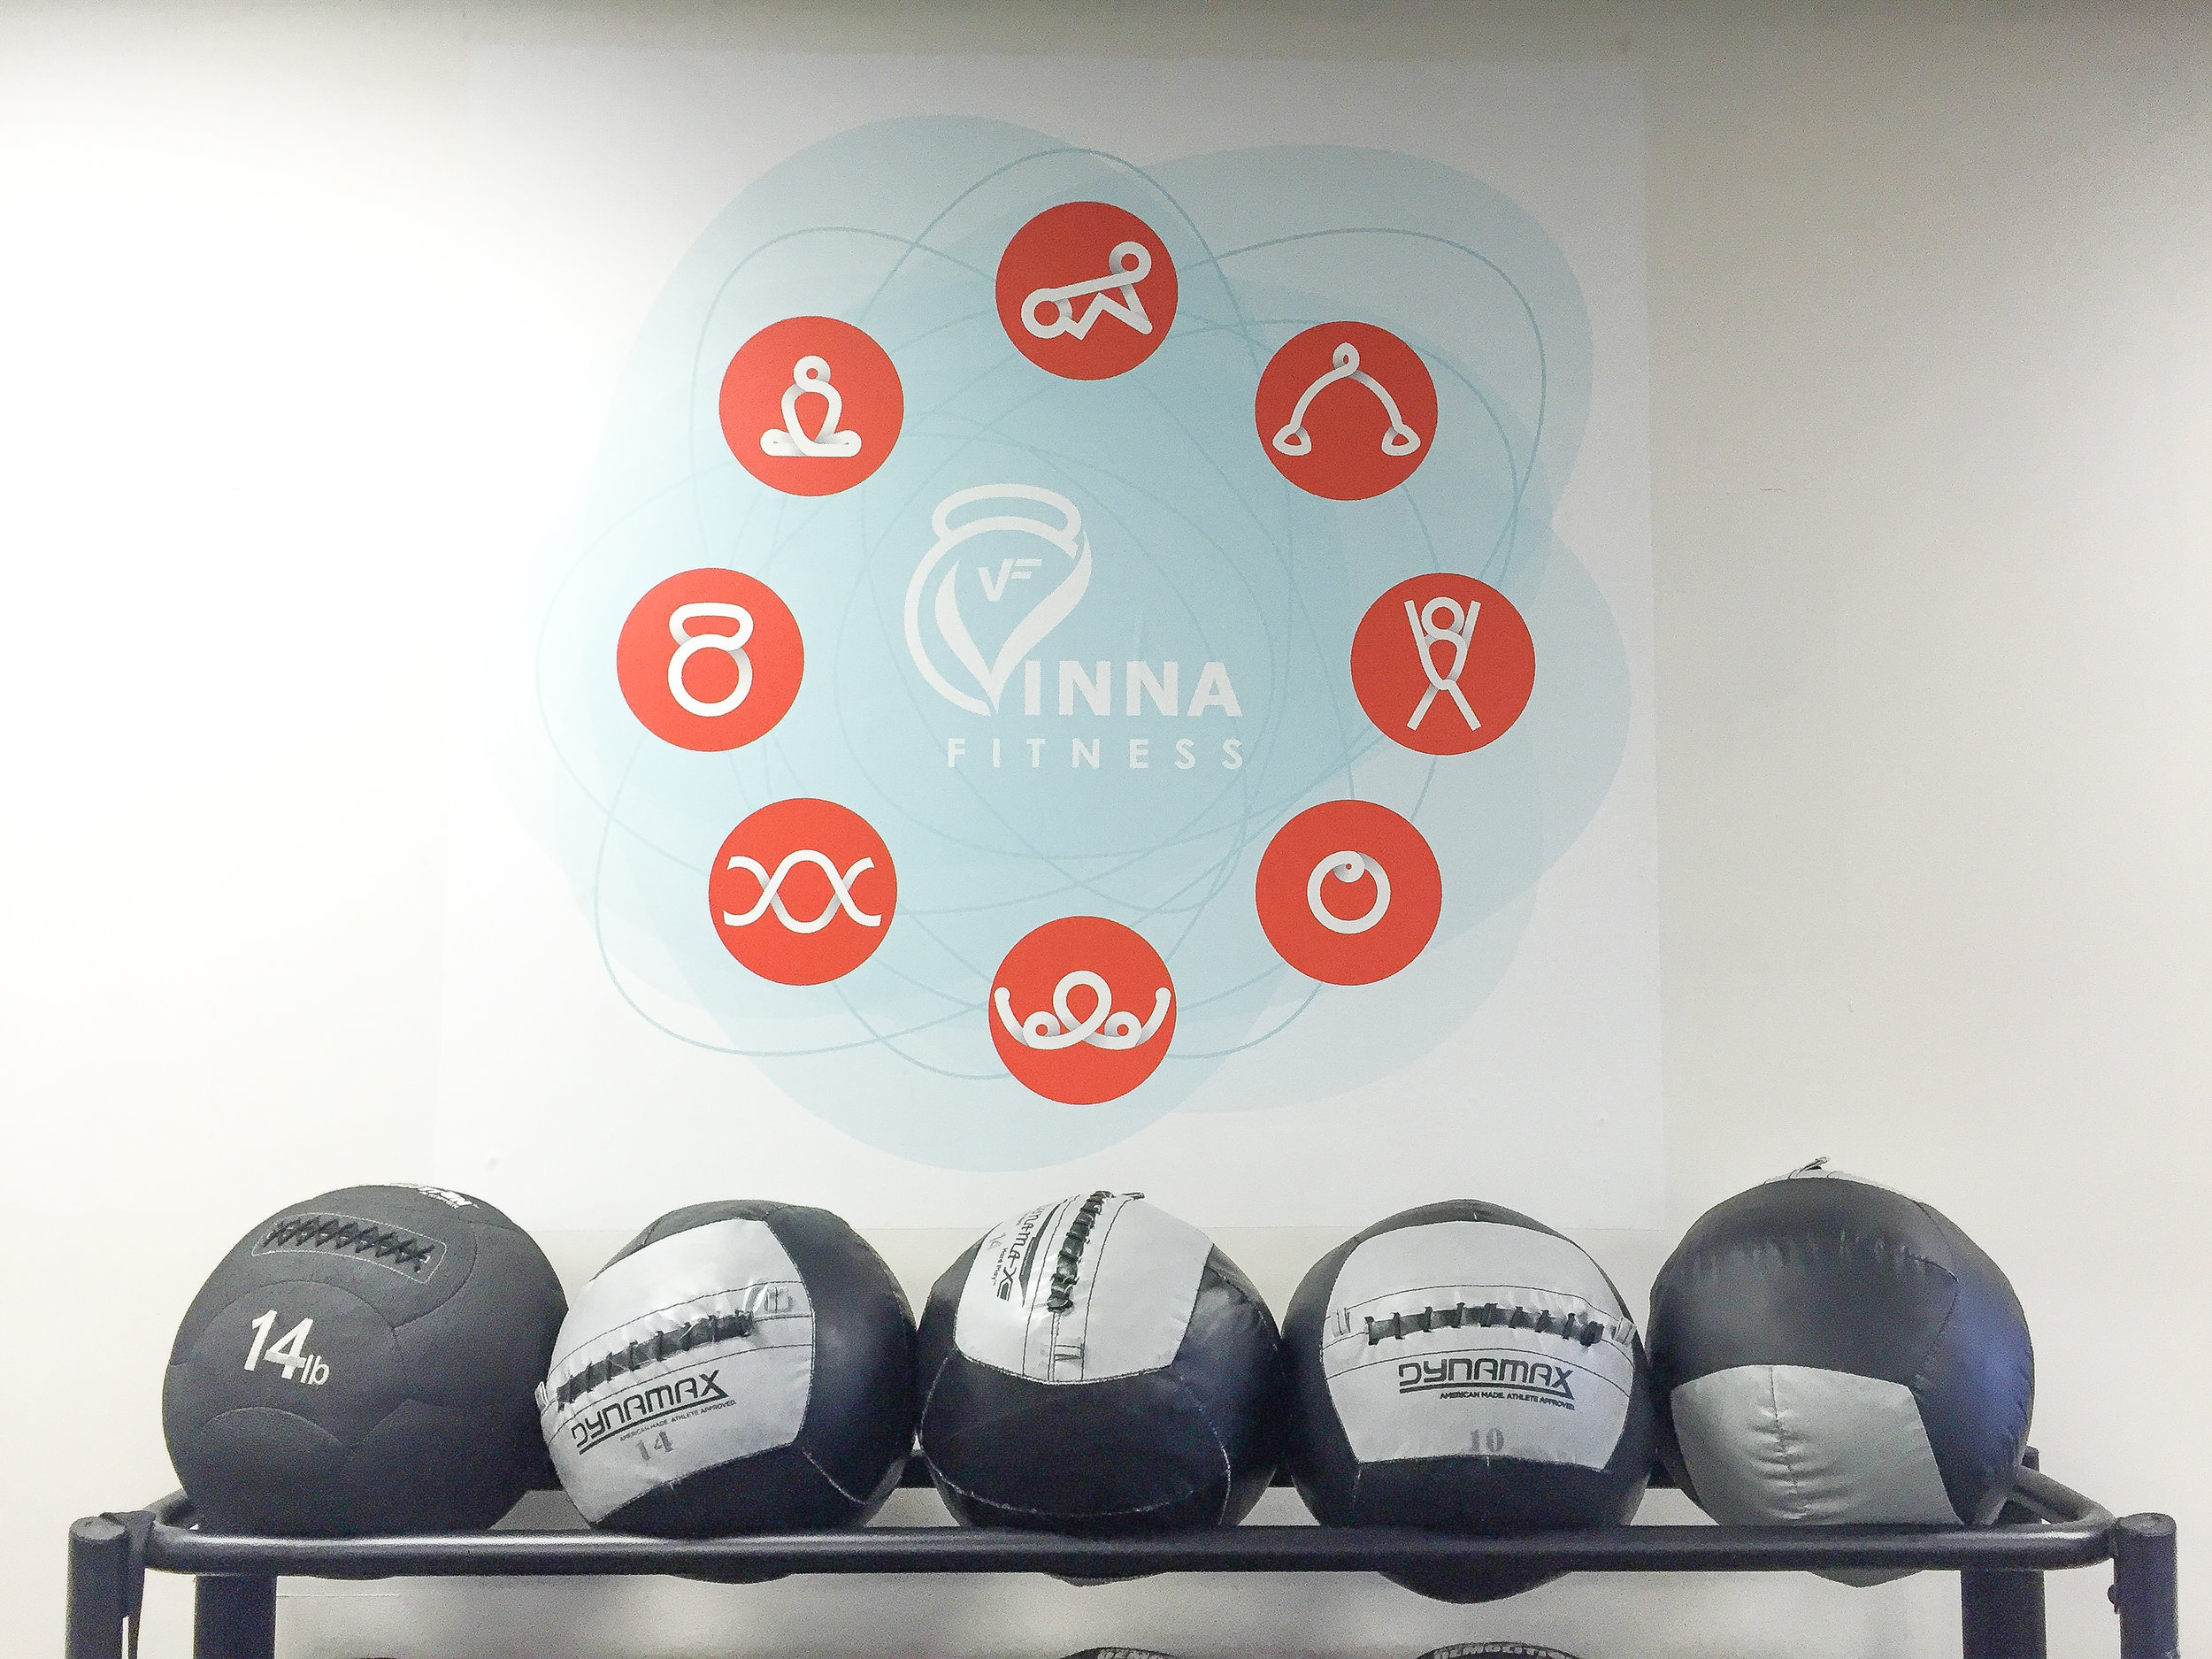 vinna fitness, fitness review, minneapolis, group fitness, workout, personal trainer, fitness instructor